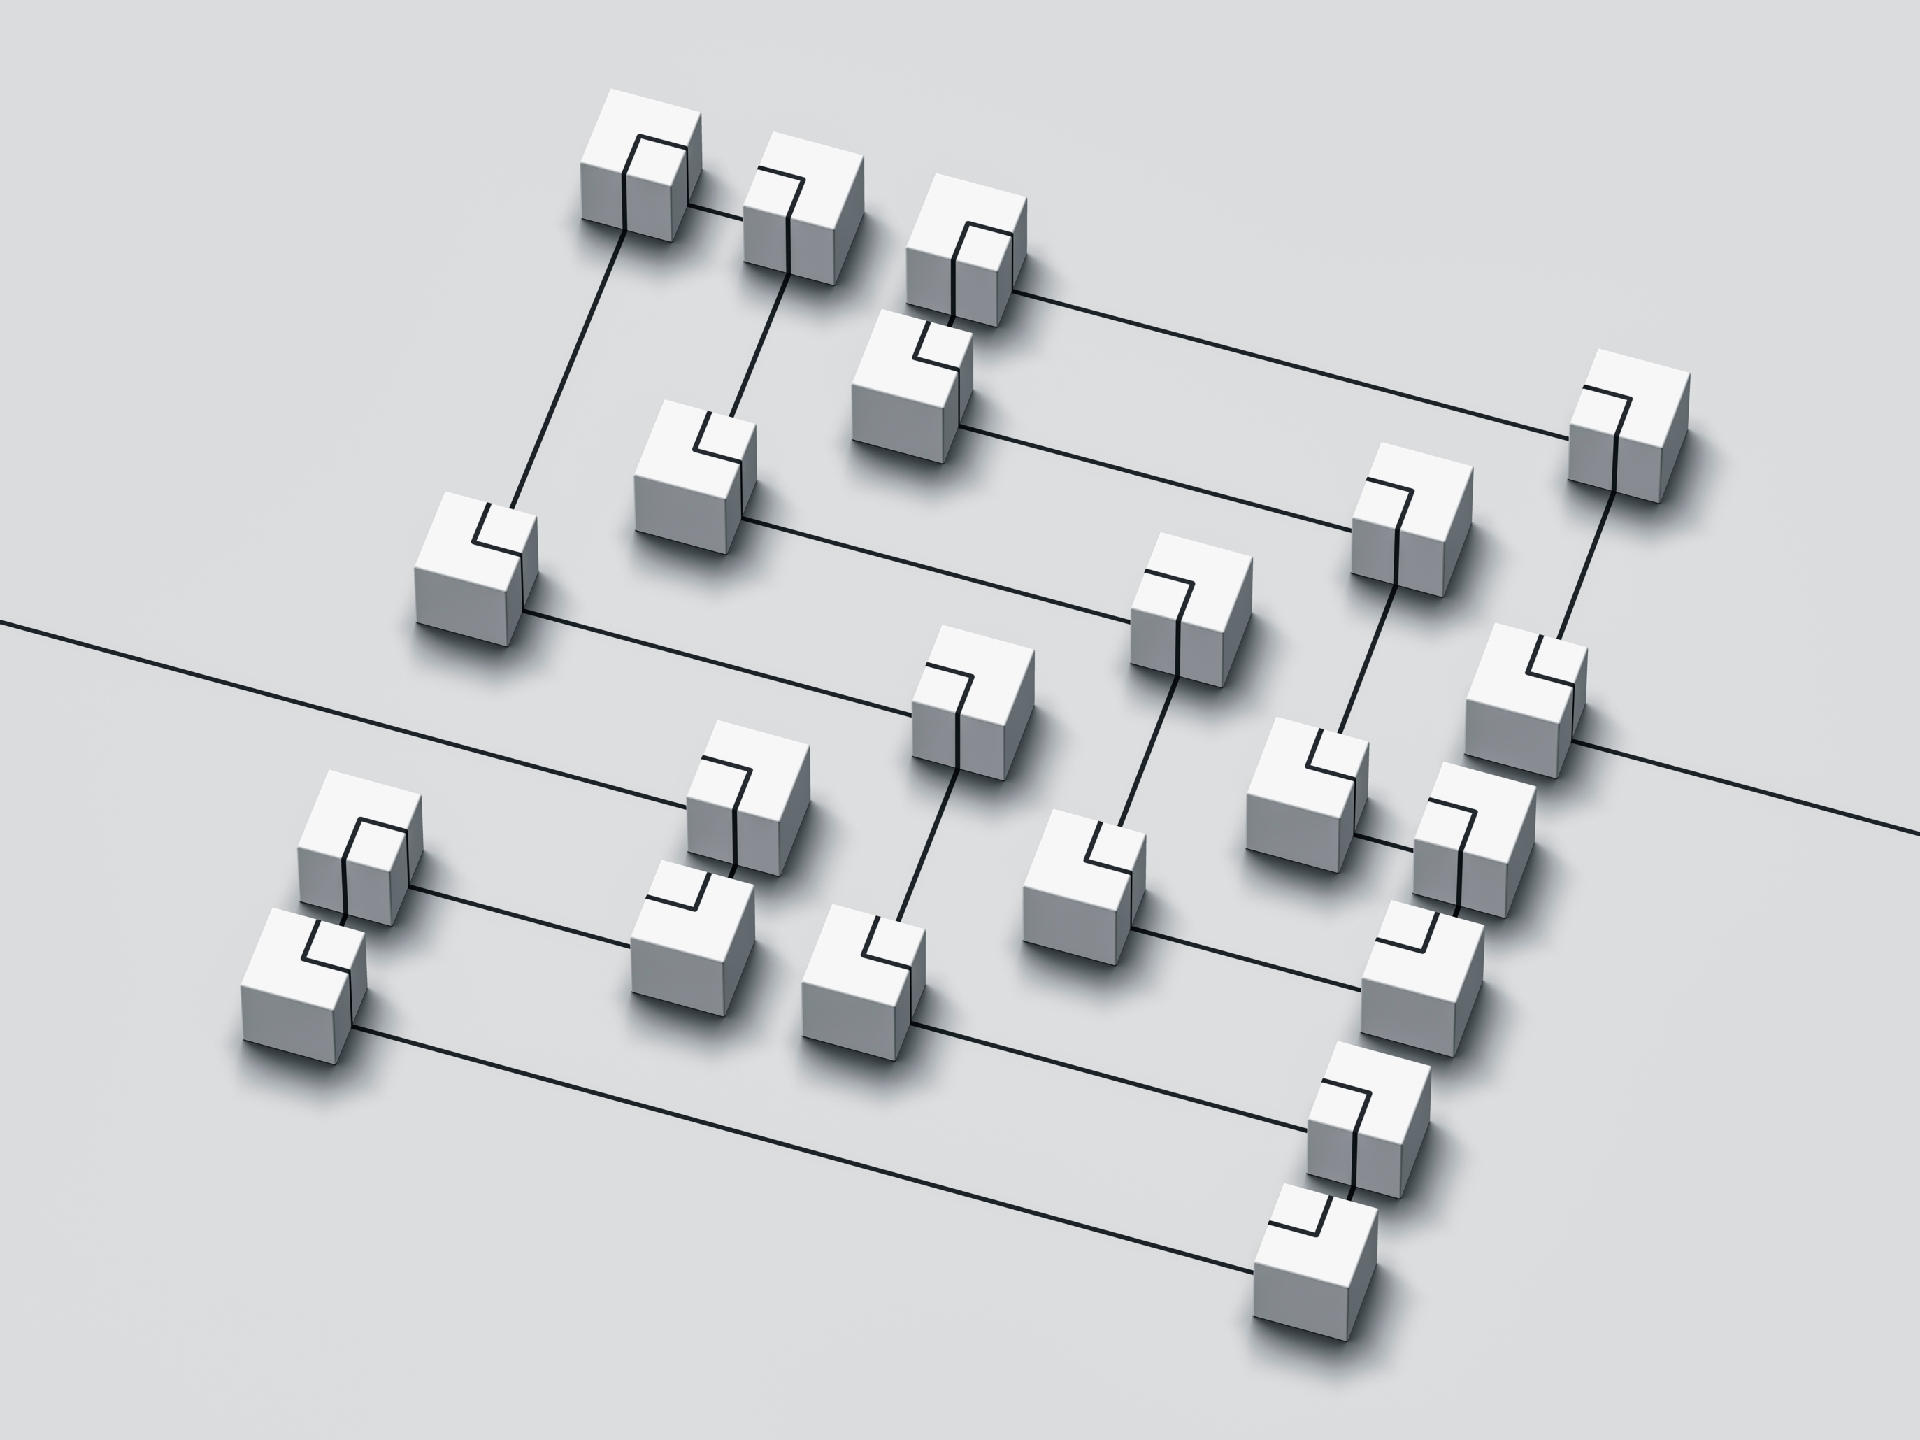 Gray image of white and black connected boxes